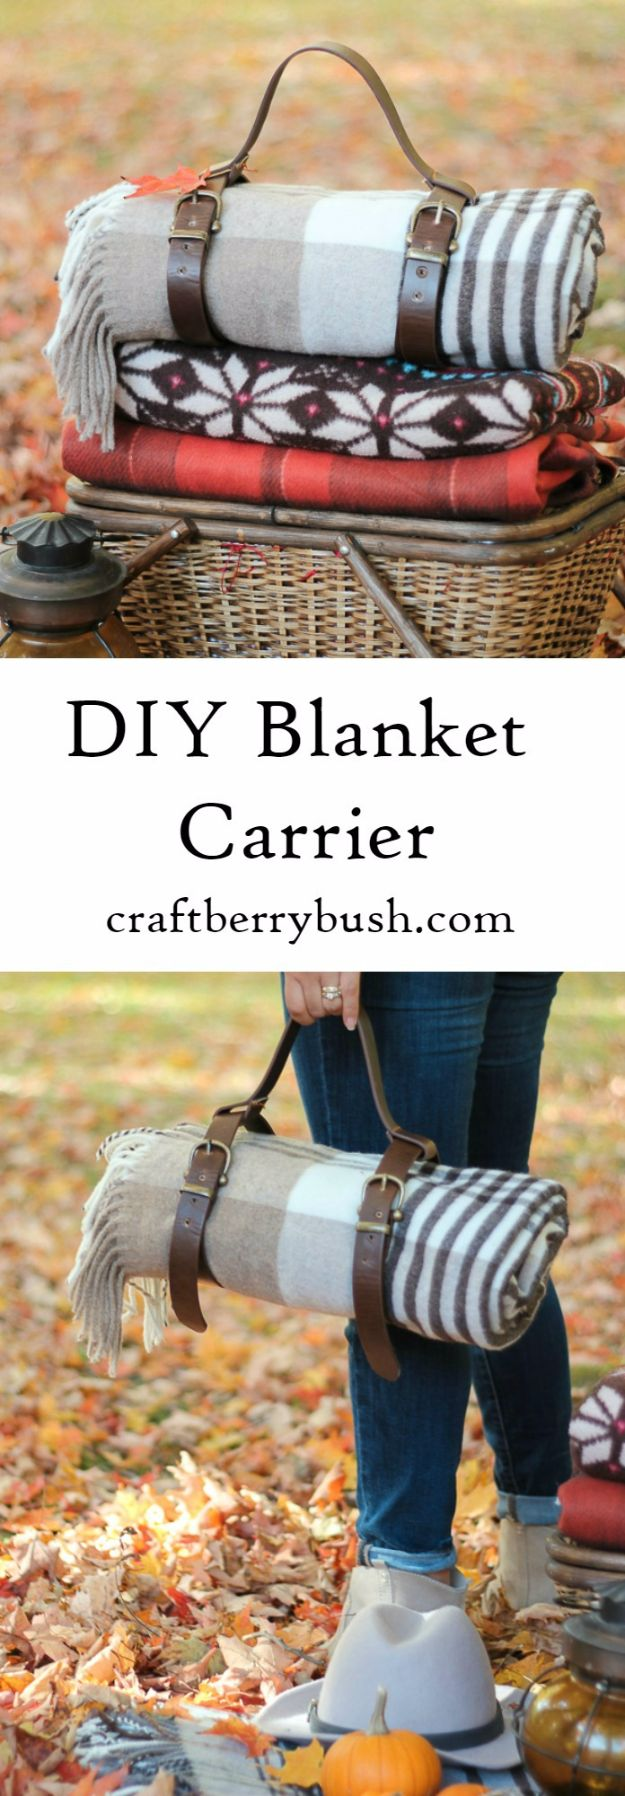 DIY Picnic Ideas - Leather Blanket Carrier DIY For Picnic - Cool Recipes and Tips for Picnics and Meals Outdoors - Recipes, Easy Sandwich Wraps, Blankets, Baskets and Carriers to Make for Fun Family Outings and Romantic Date Ideas - Mason Jar Drinks, Snack Holders, Utensil Caddy and Picnic Hacks